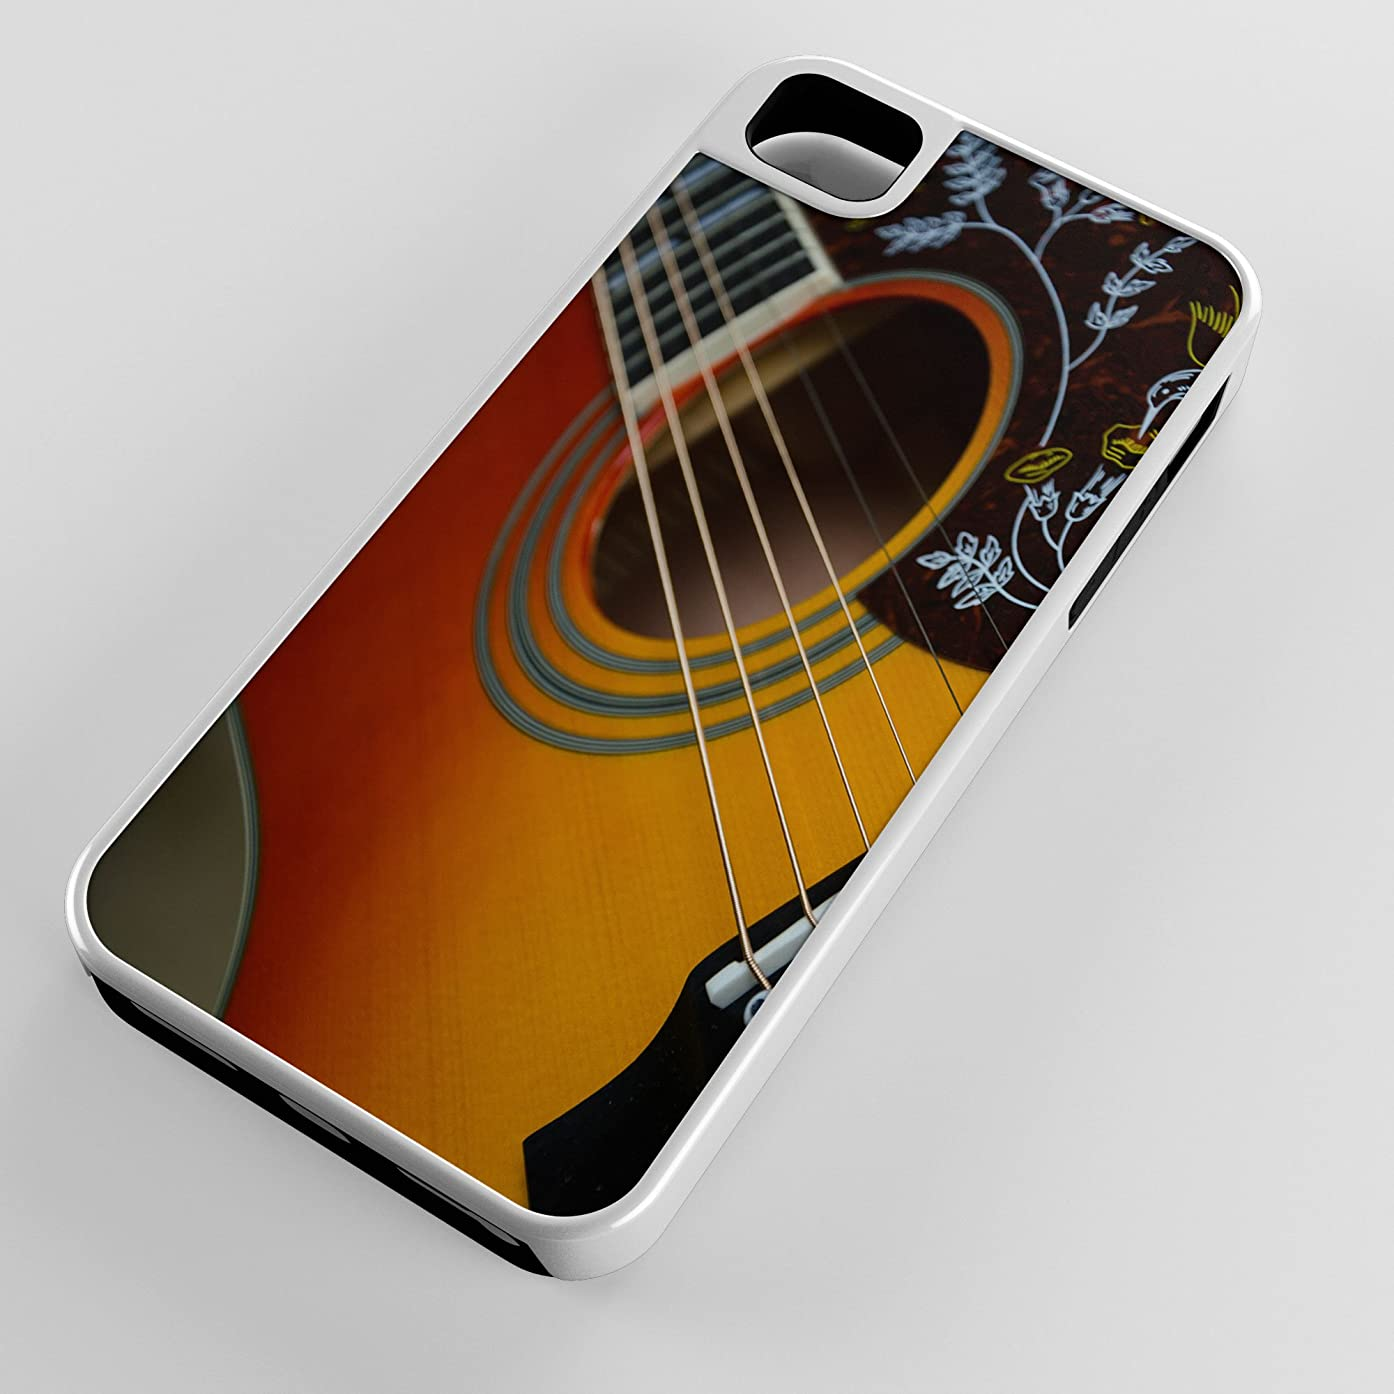 iPhone Case Fits Apple iPhone 5c Hybrid Tough Case Picking And Grinning Acoustic Guitar White Plastic Black Rubber